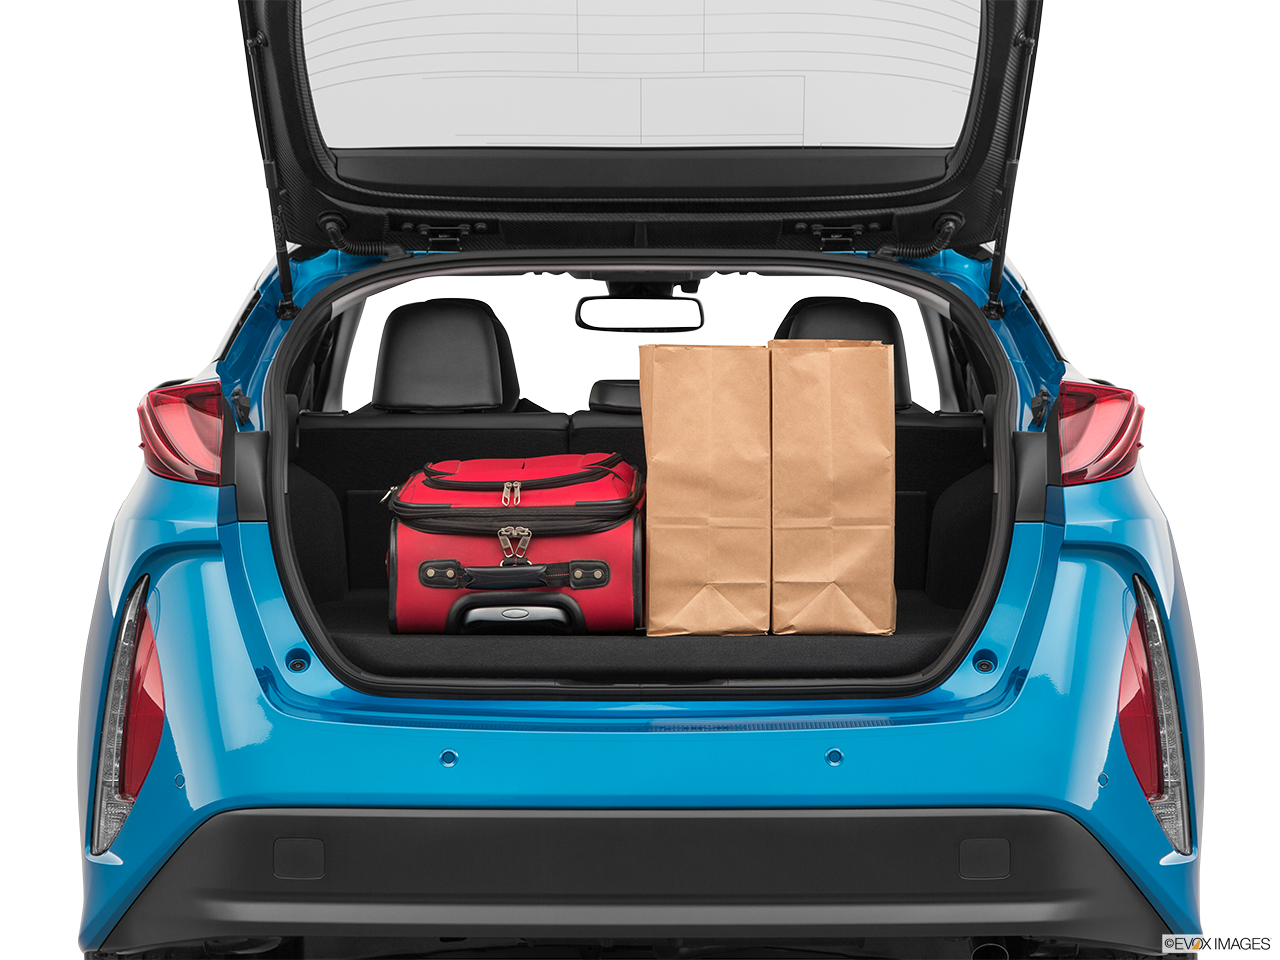 Trunk view of the Toyota Prius Prime